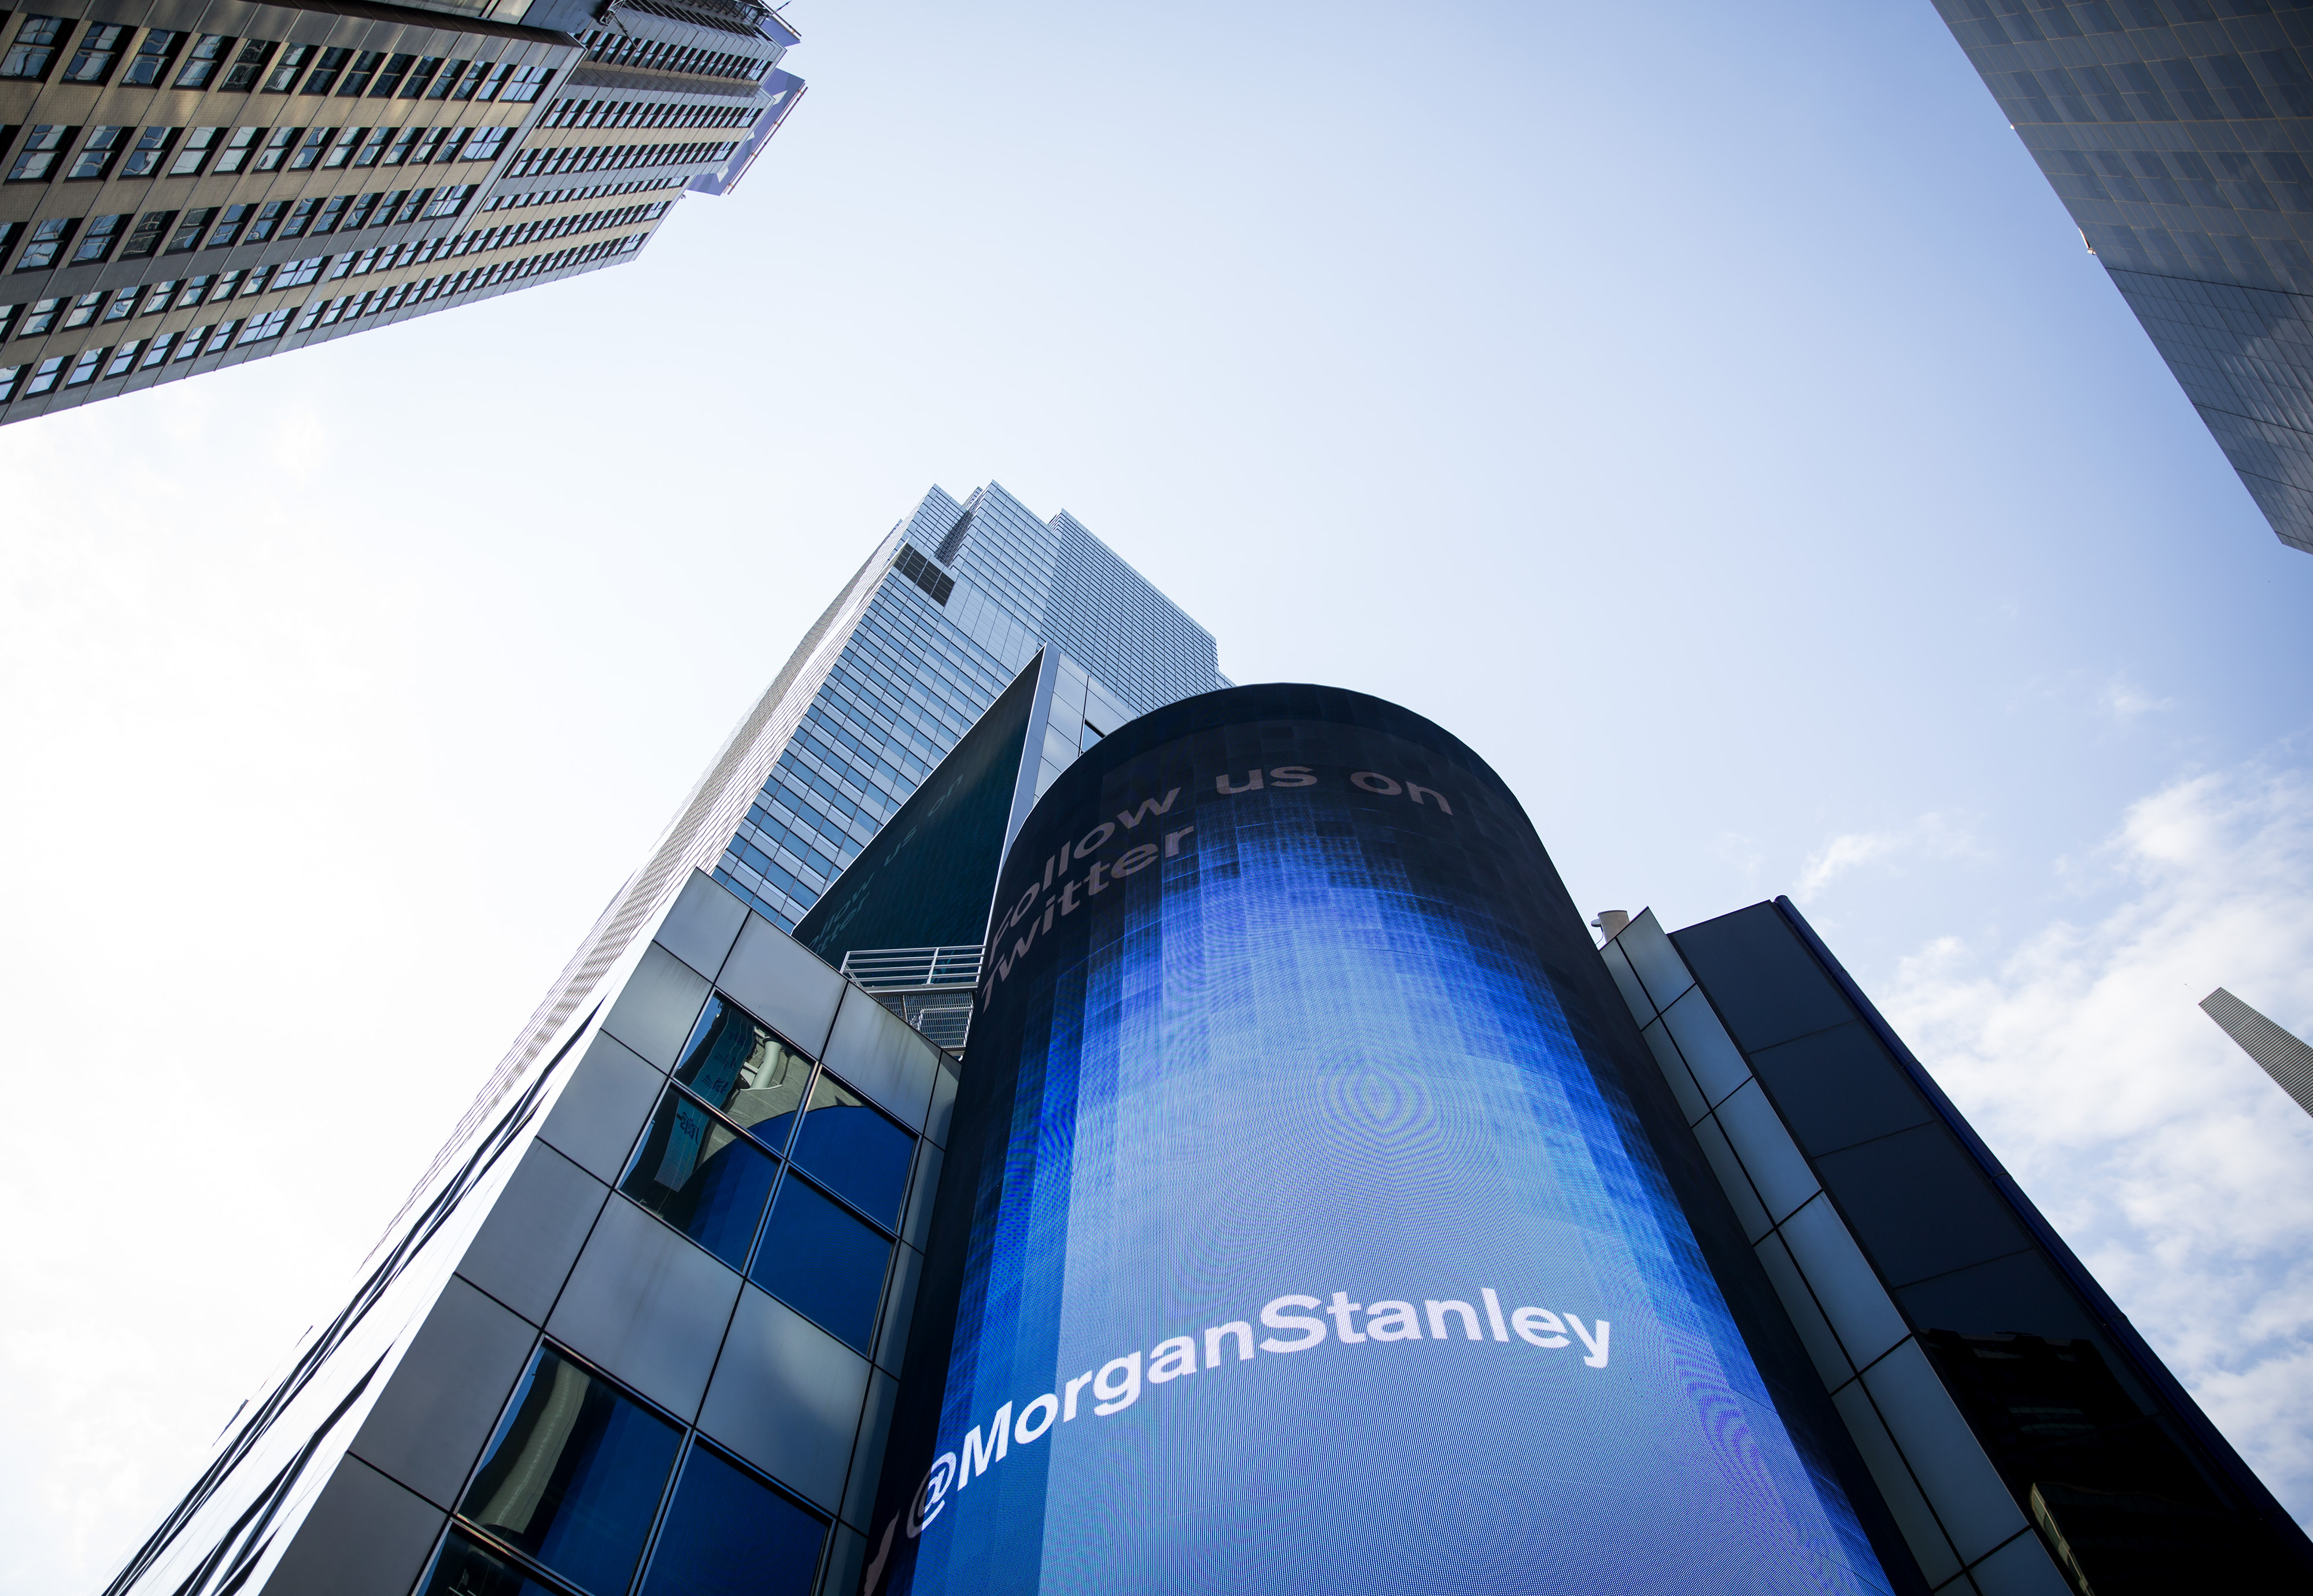 Morgan Stanley Teams With Tech to Improve Wealth Management